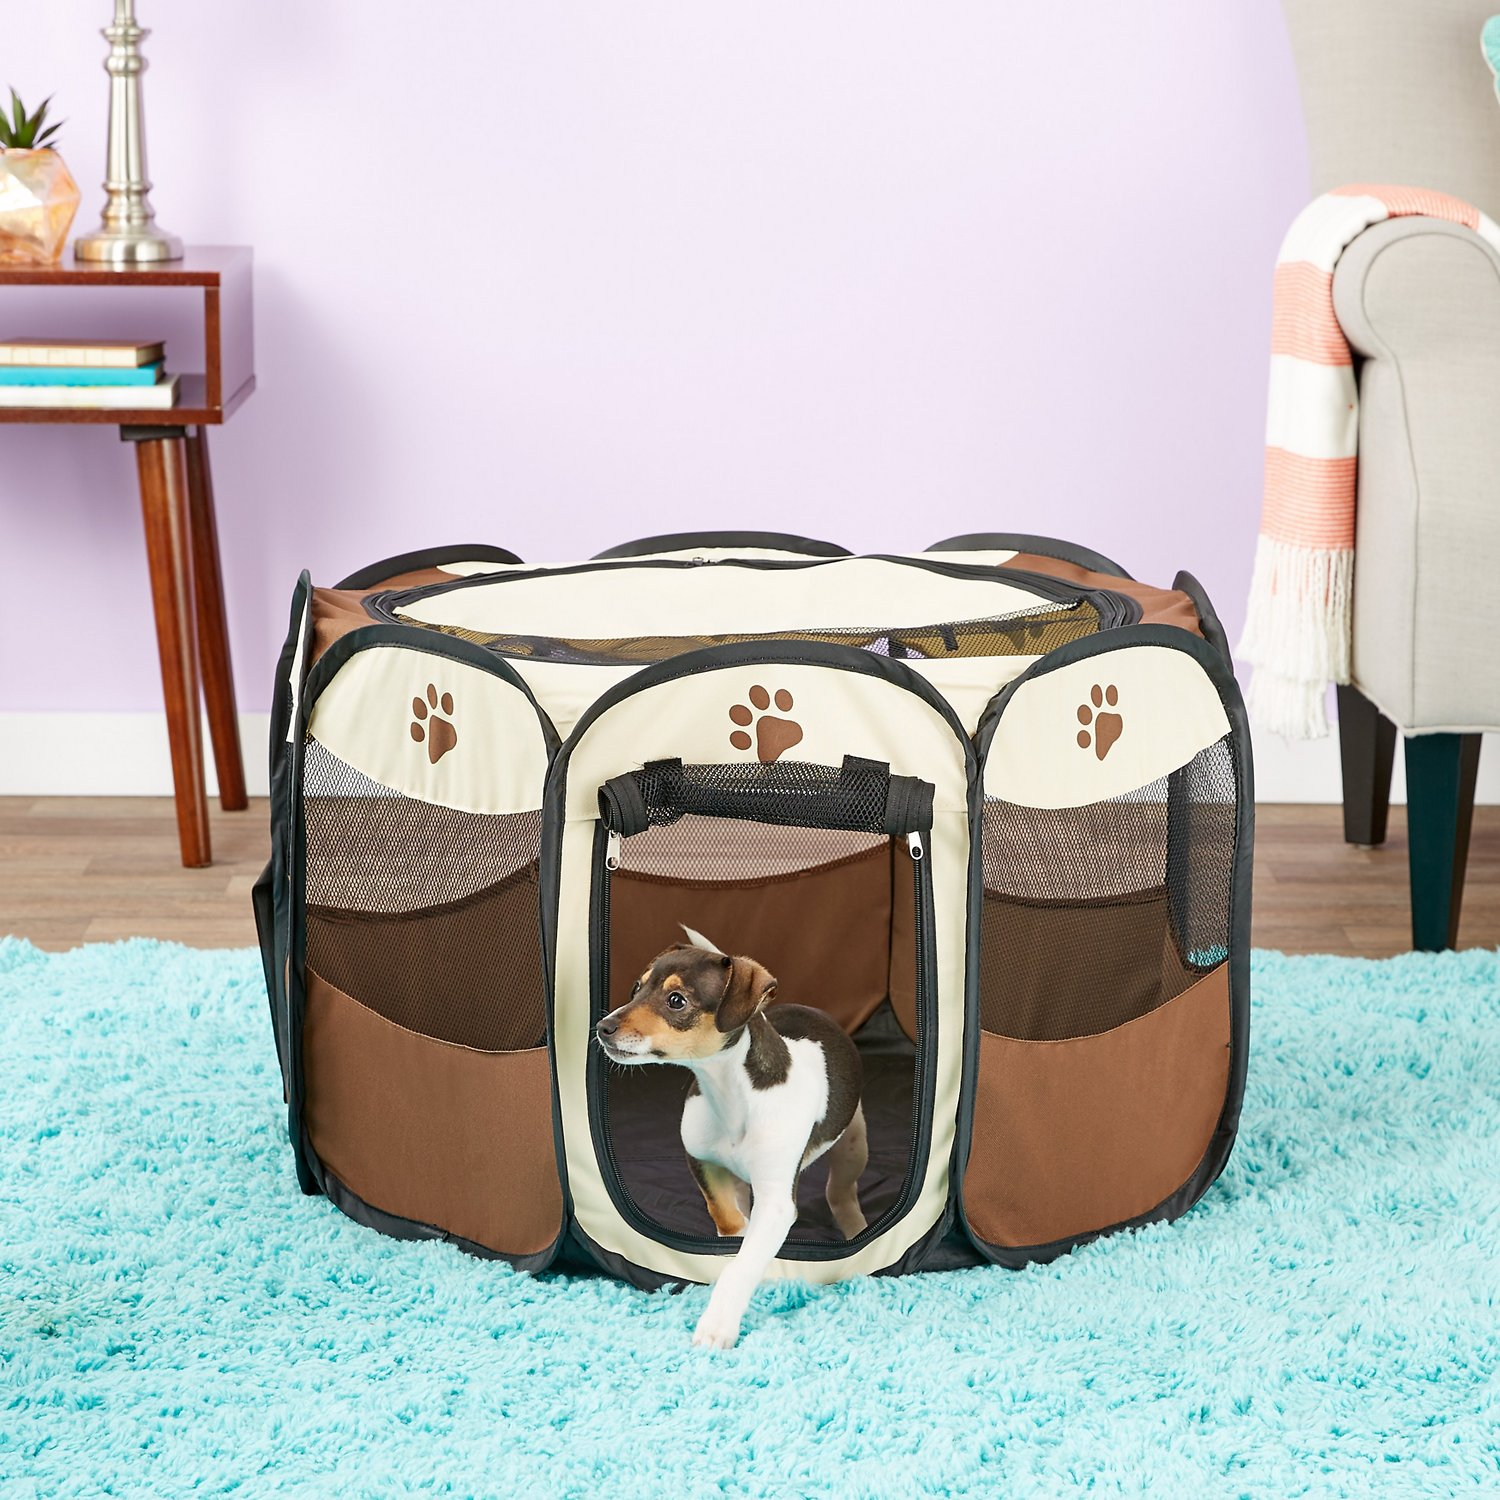 Terrific Etna Pet Store Portable Dog Play Pen Tan Small Gmtry Best Dining Table And Chair Ideas Images Gmtryco